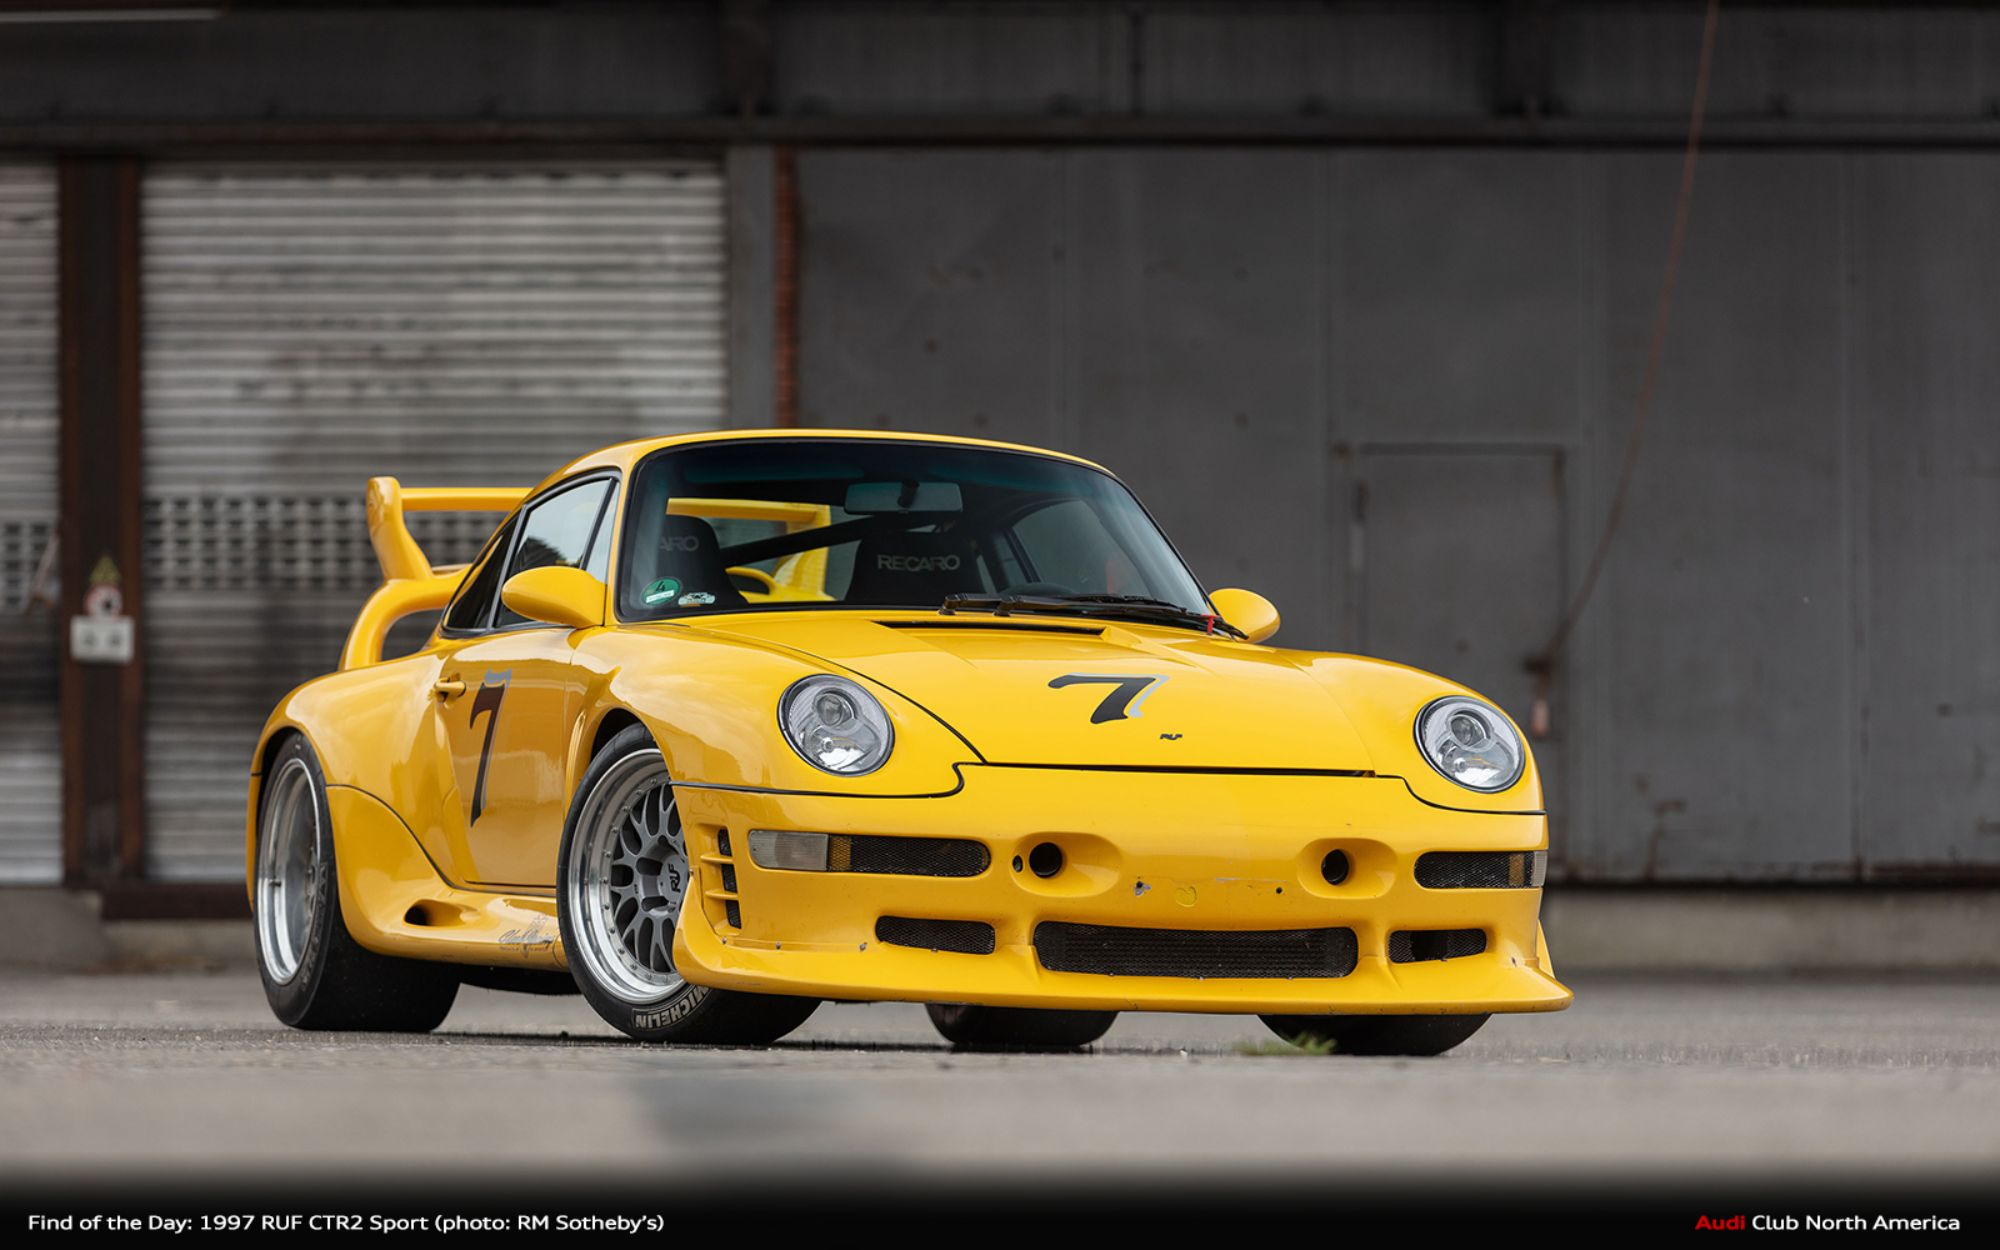 Find of the Day: 1997 RUF CTR 2 Sport...Wait What?